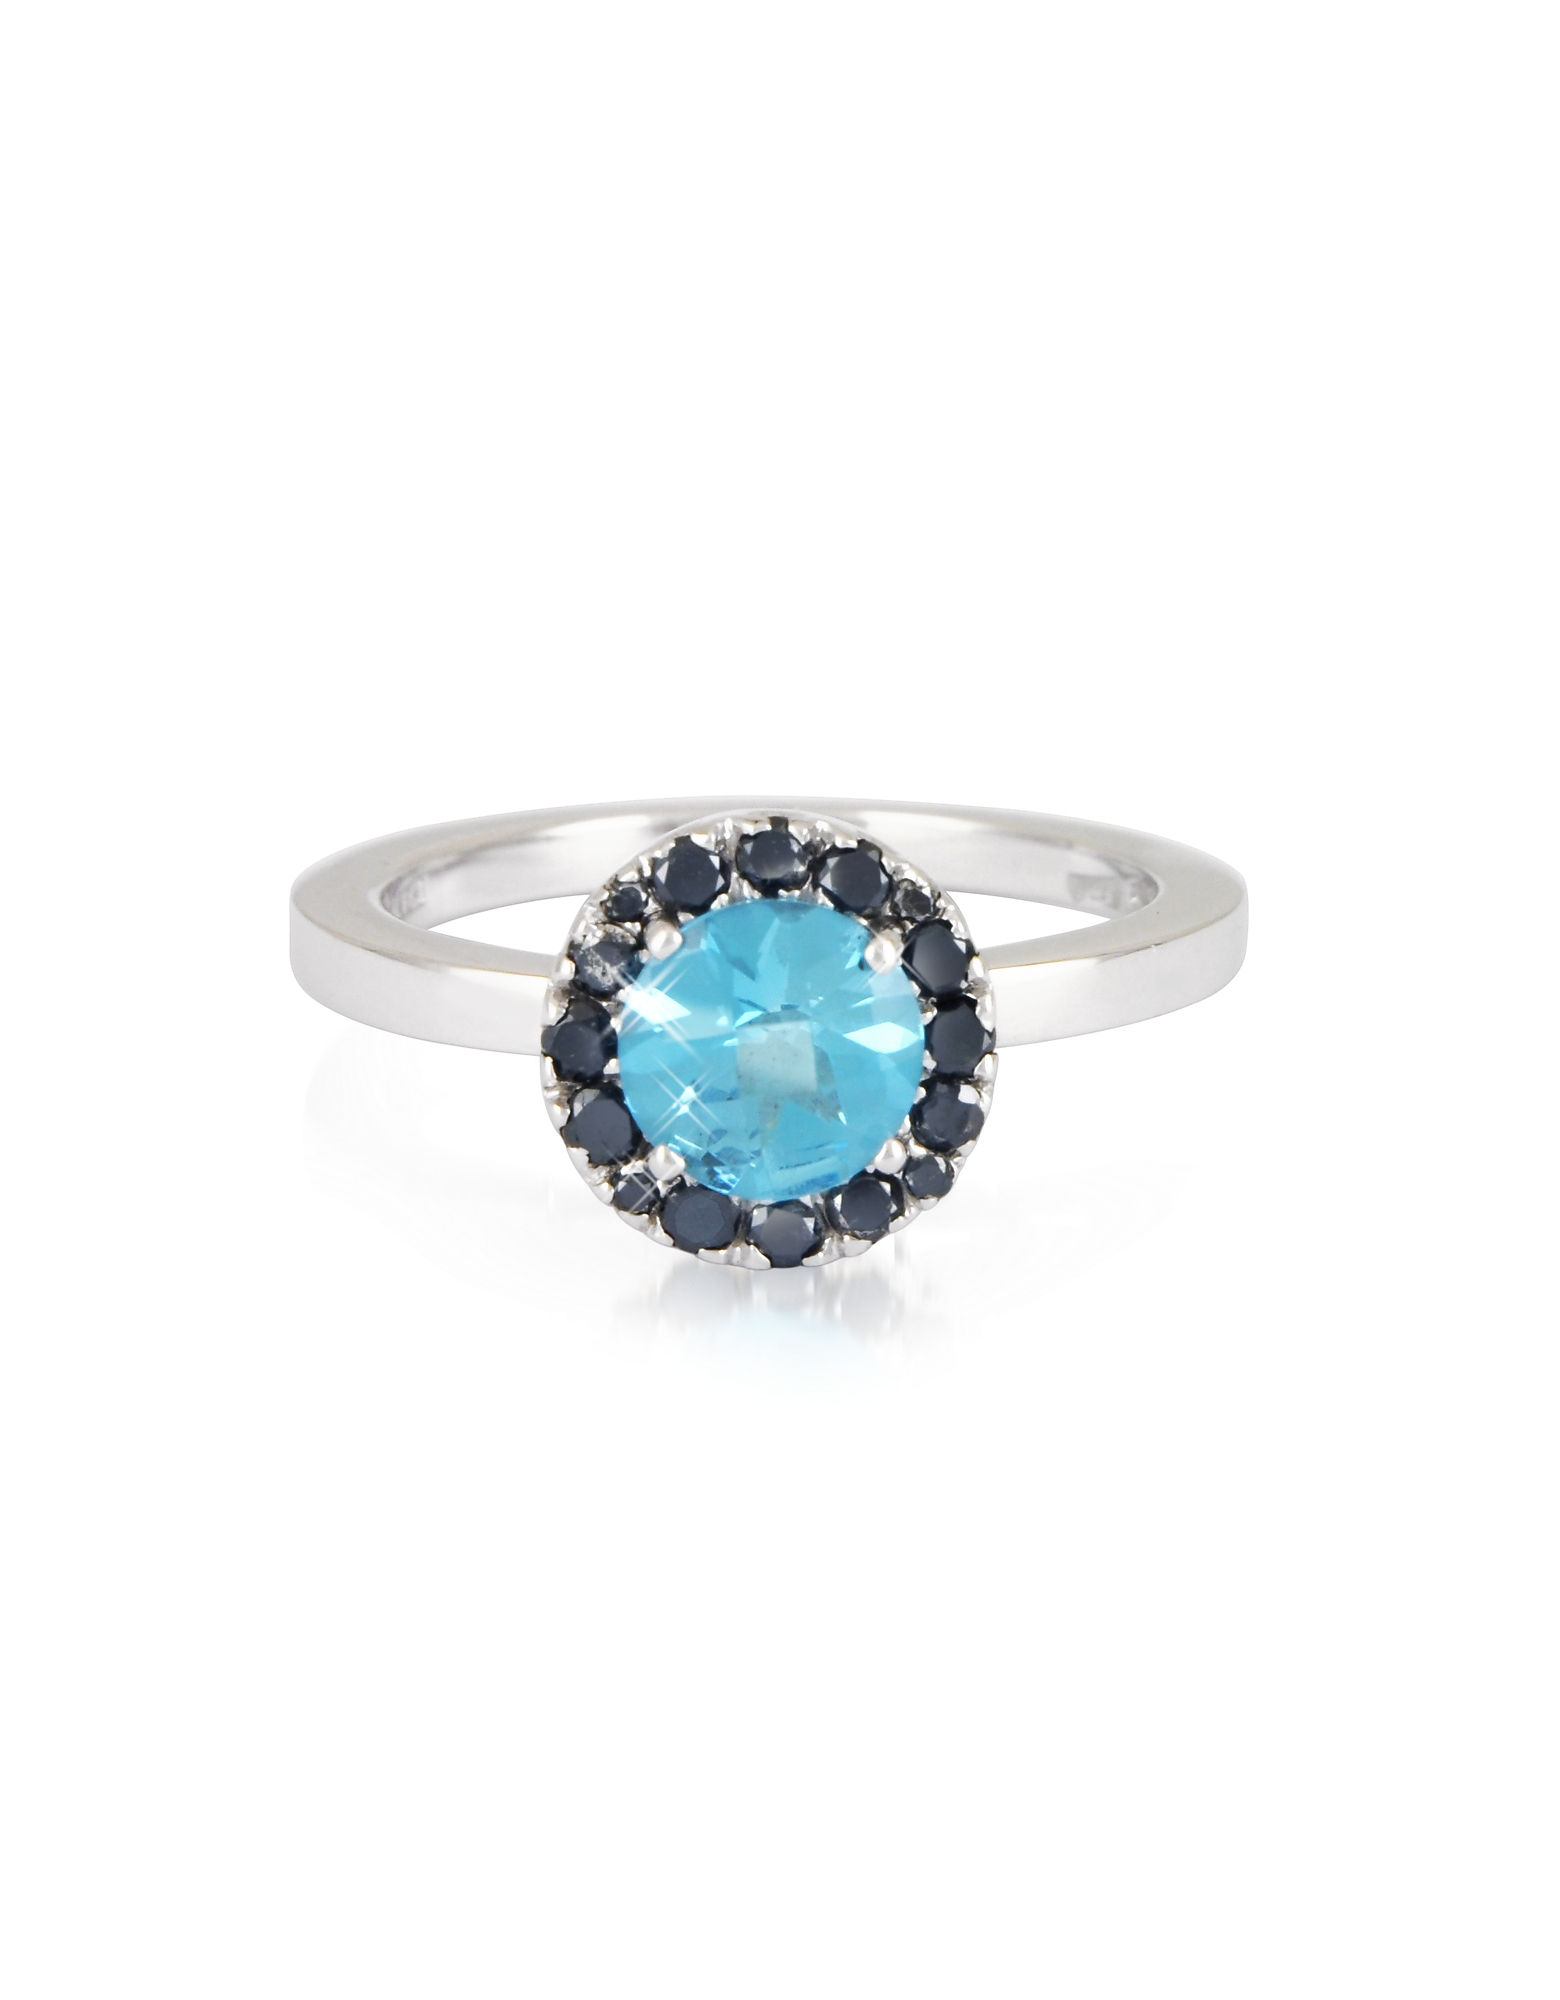 Forzieri Rings, 0.27 ct Diamond Pave 18K White Gold Ring w/Blue Topaz